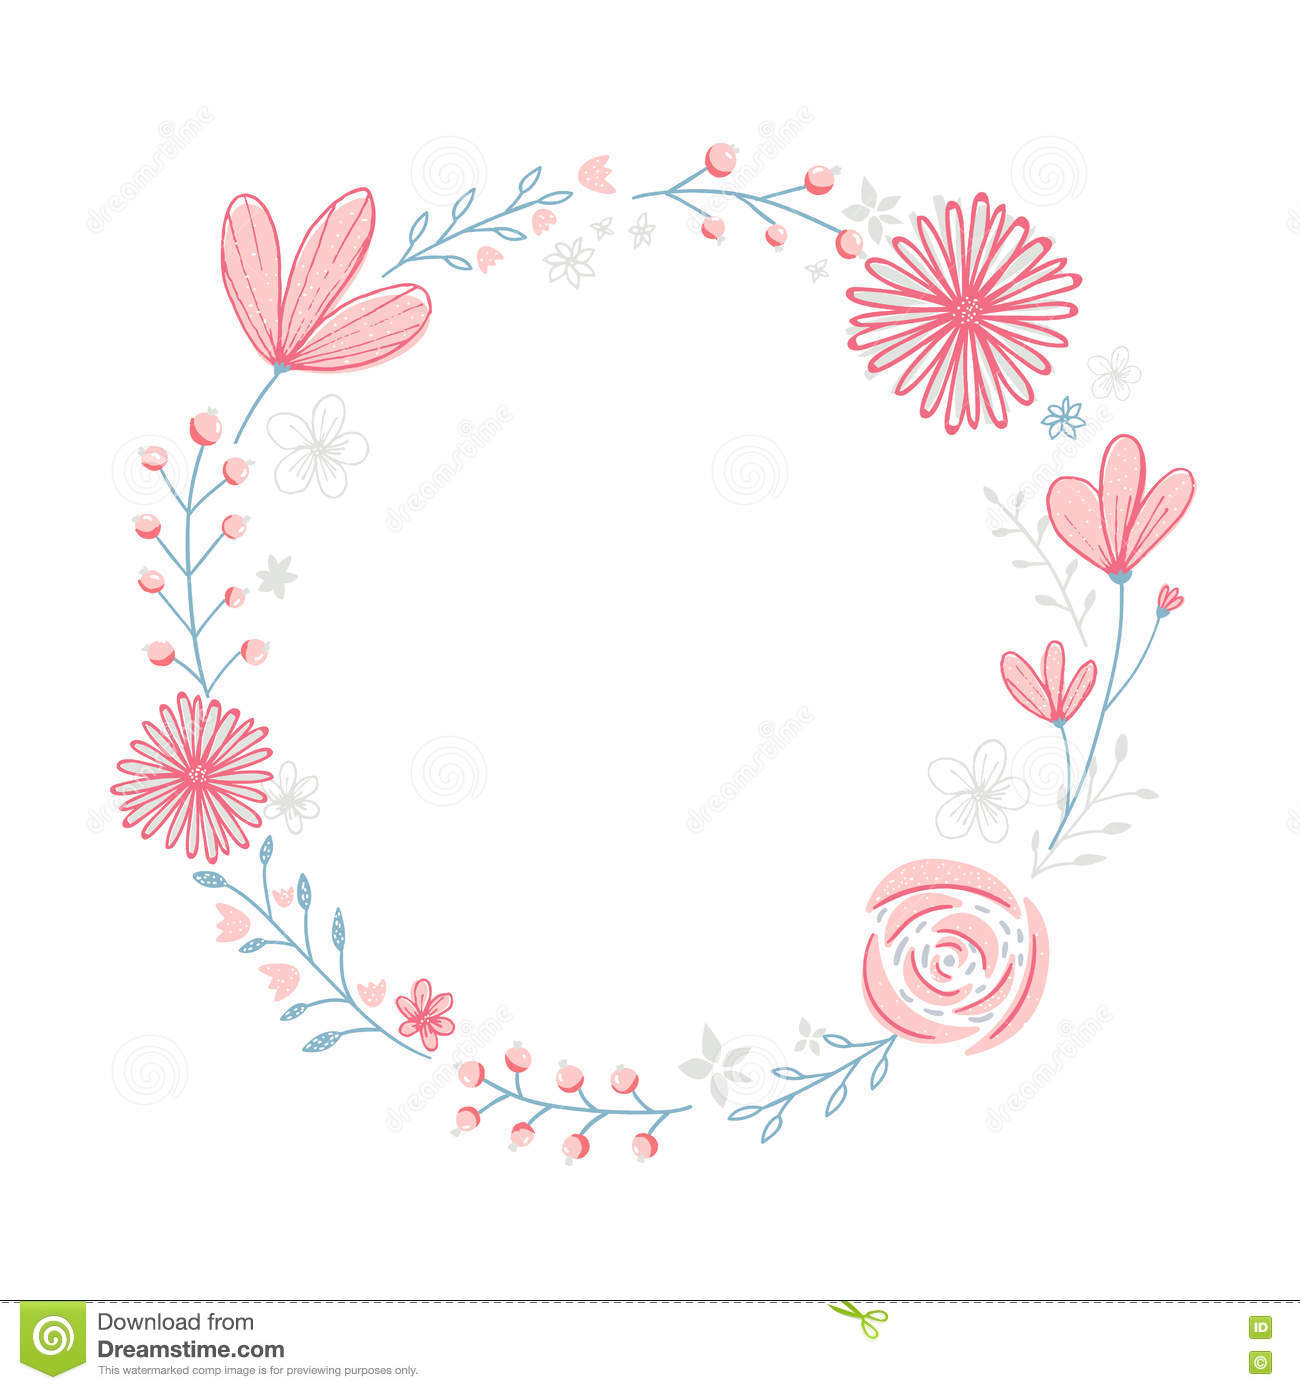 floral wreath frame with copyspace hand drawn pastel pink flowers rh dreamstime com Pastel Spring Flowers Border Pastel Flowers